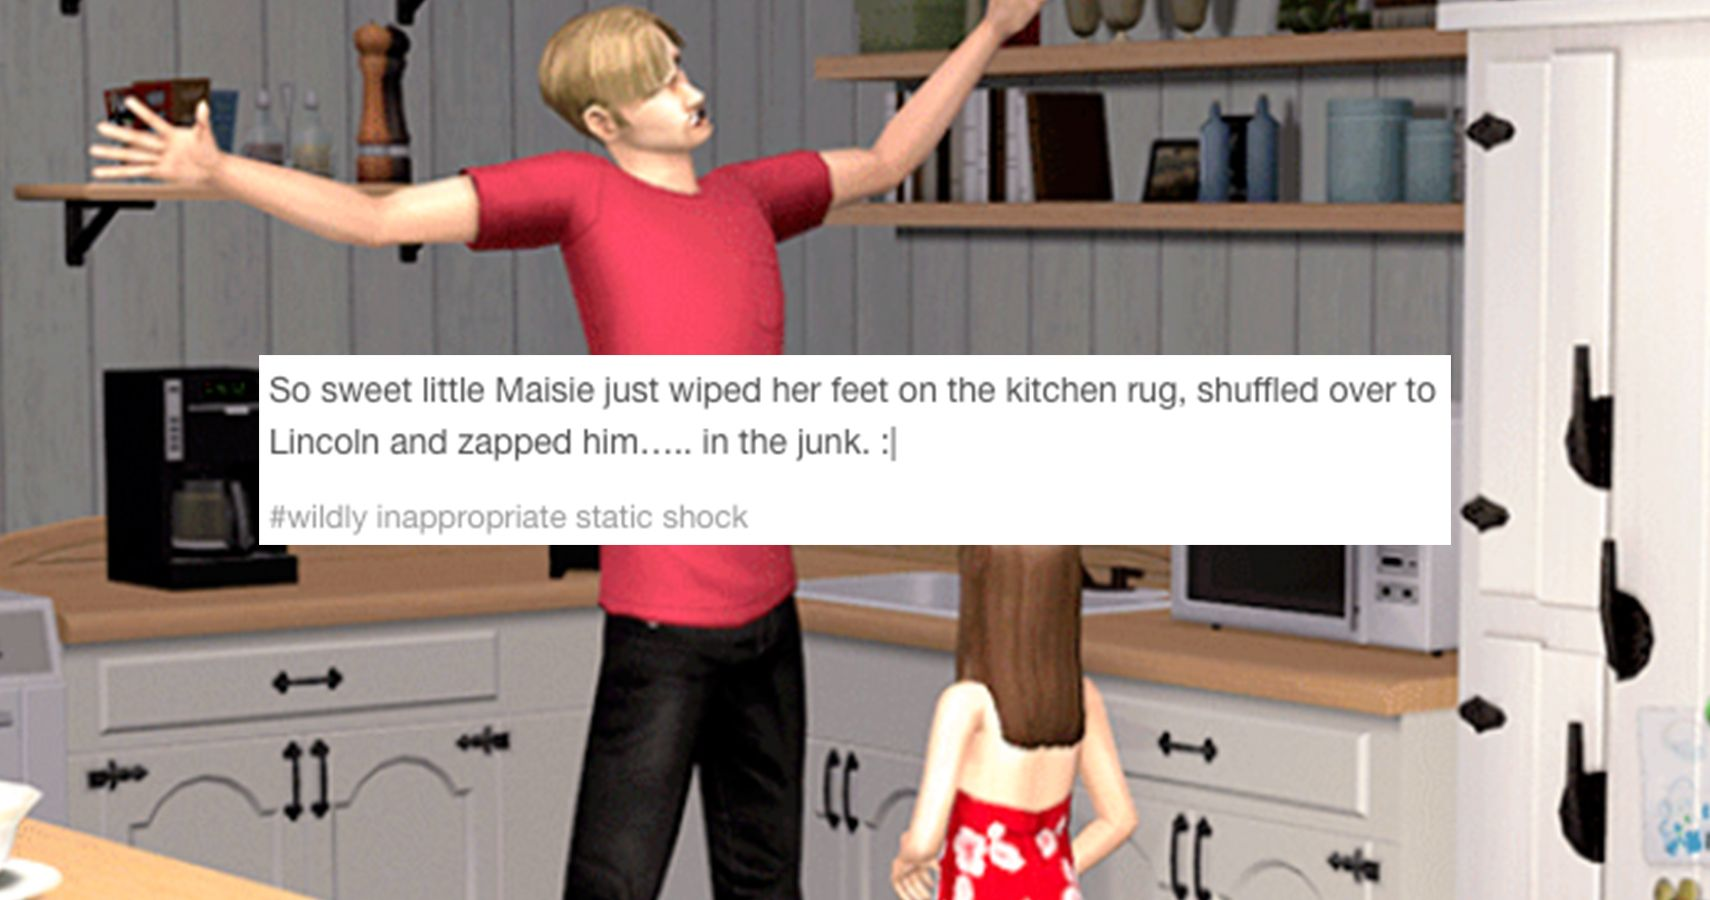 15 Of The Most Inappropriate Tumblr Posts About The Sims That Will Make You LOL